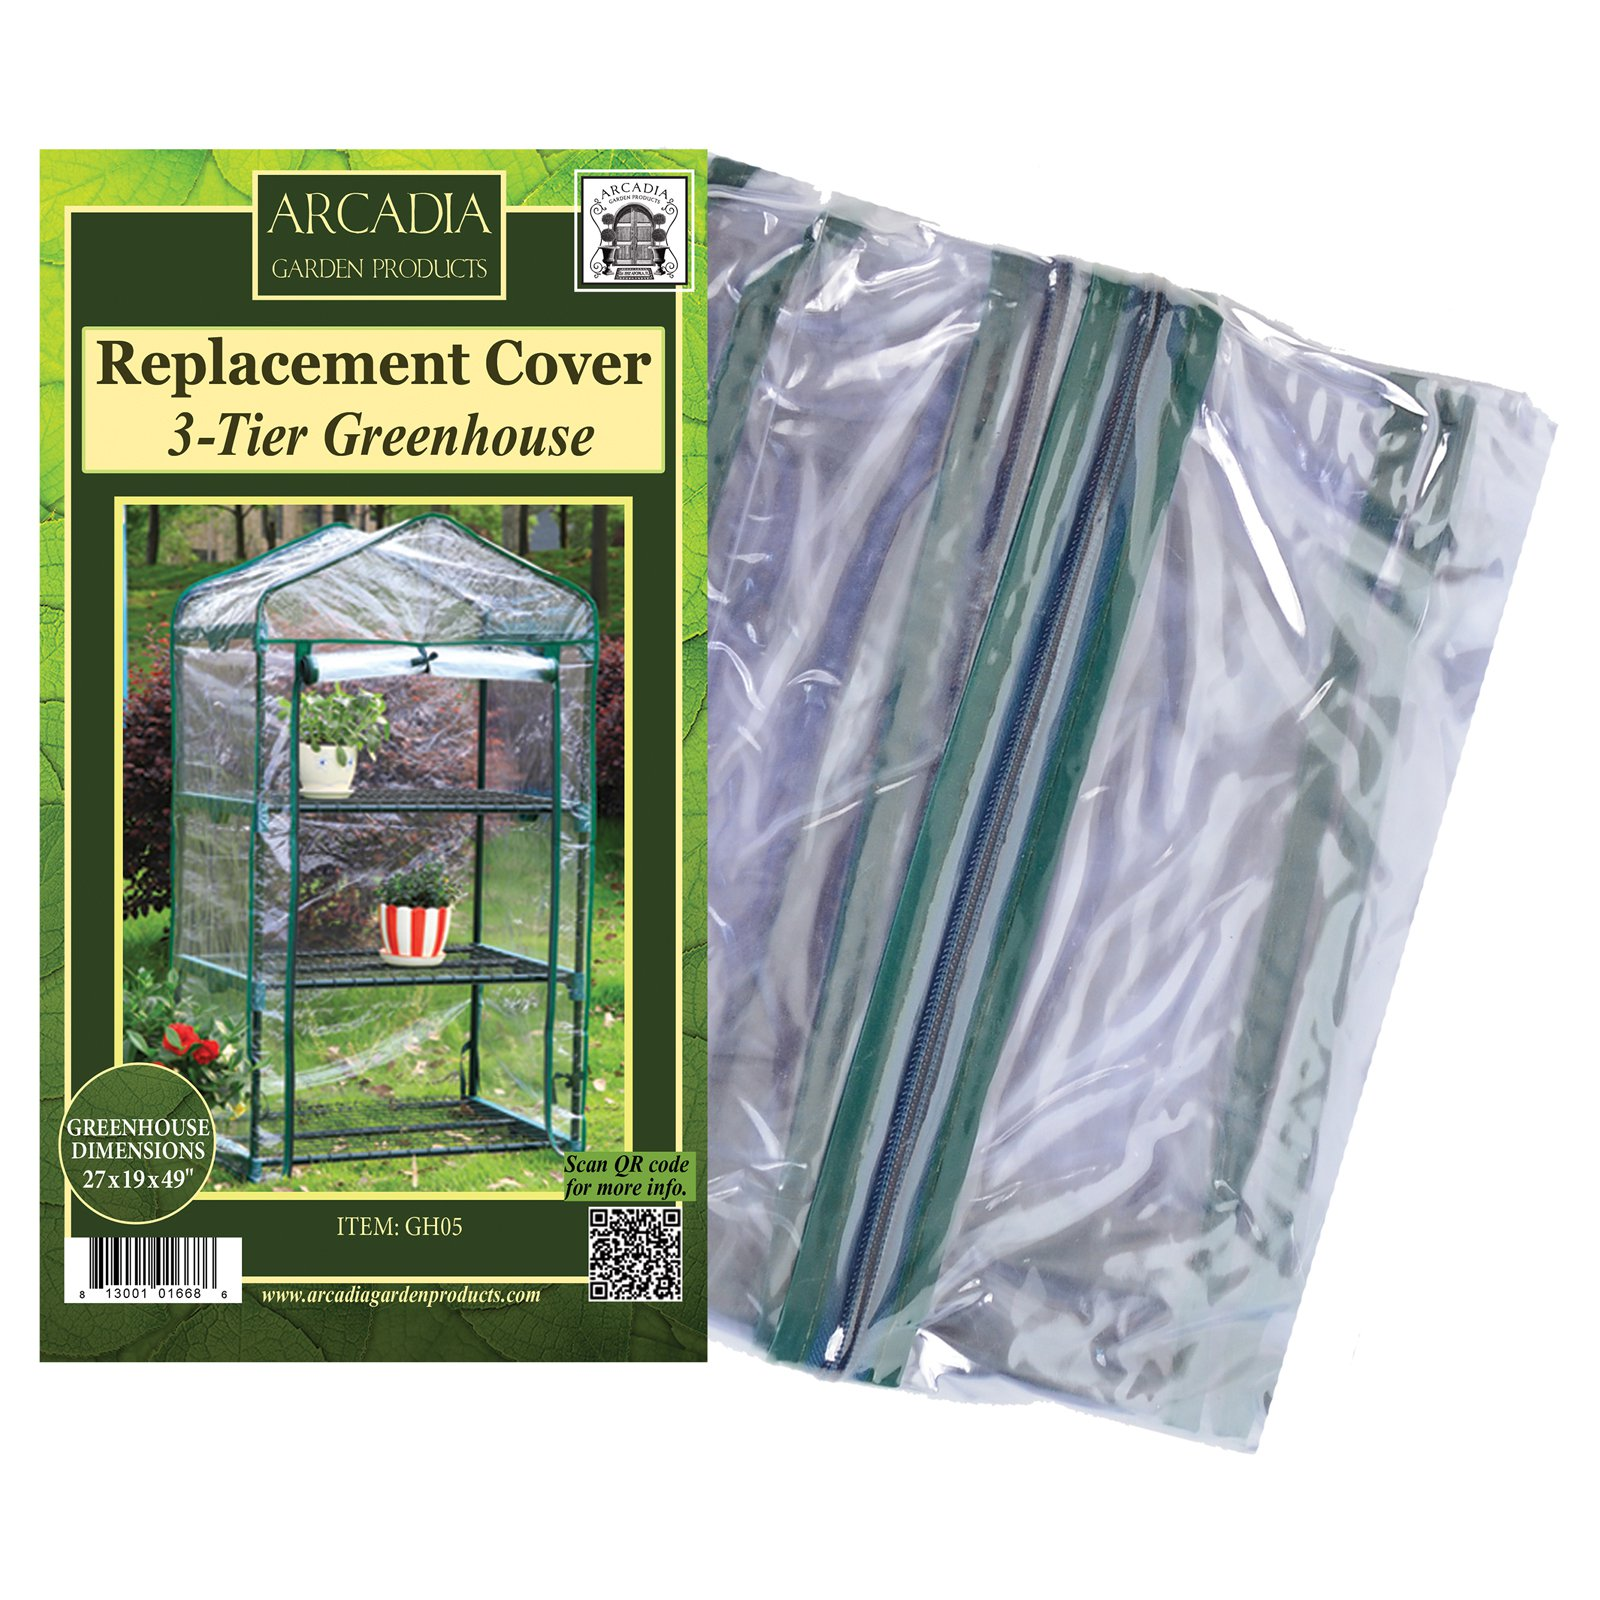 Arcadia Garden Mini Greenhouse Replacement Cover by Arcadia Garden Products